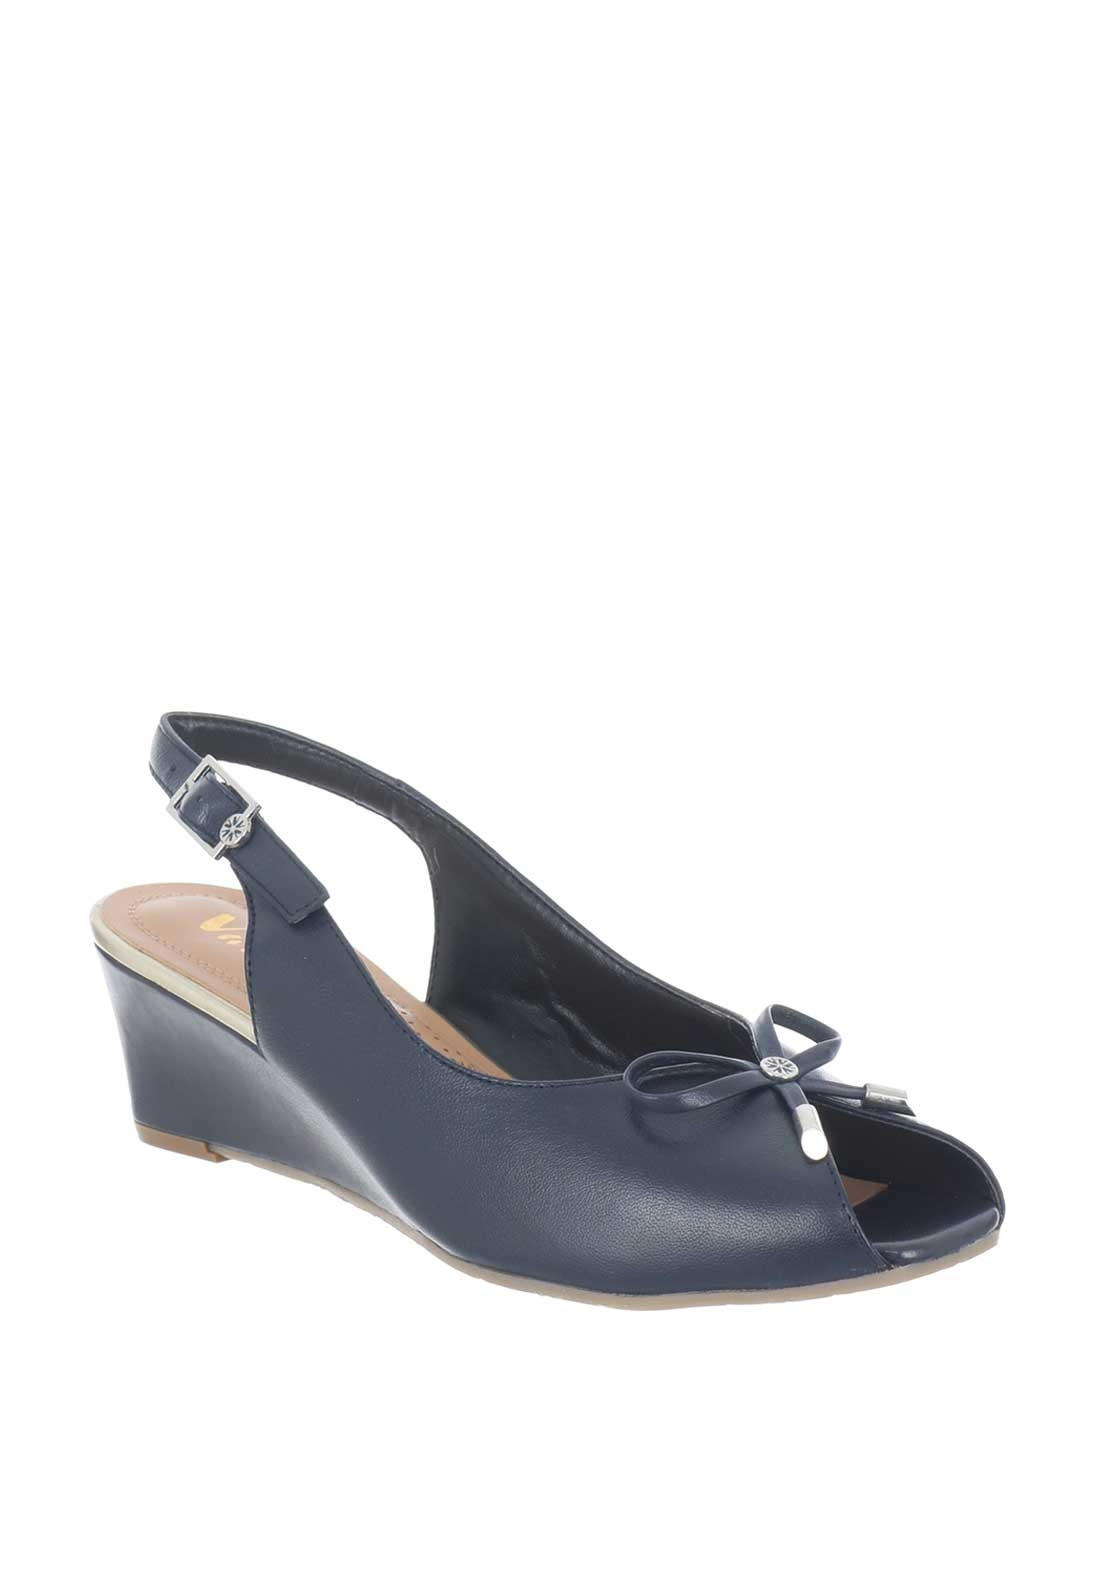 8f56f75a59deb Van Dal Oxley Leather Sling Back Wedged Sandals, Navy | McElhinneys